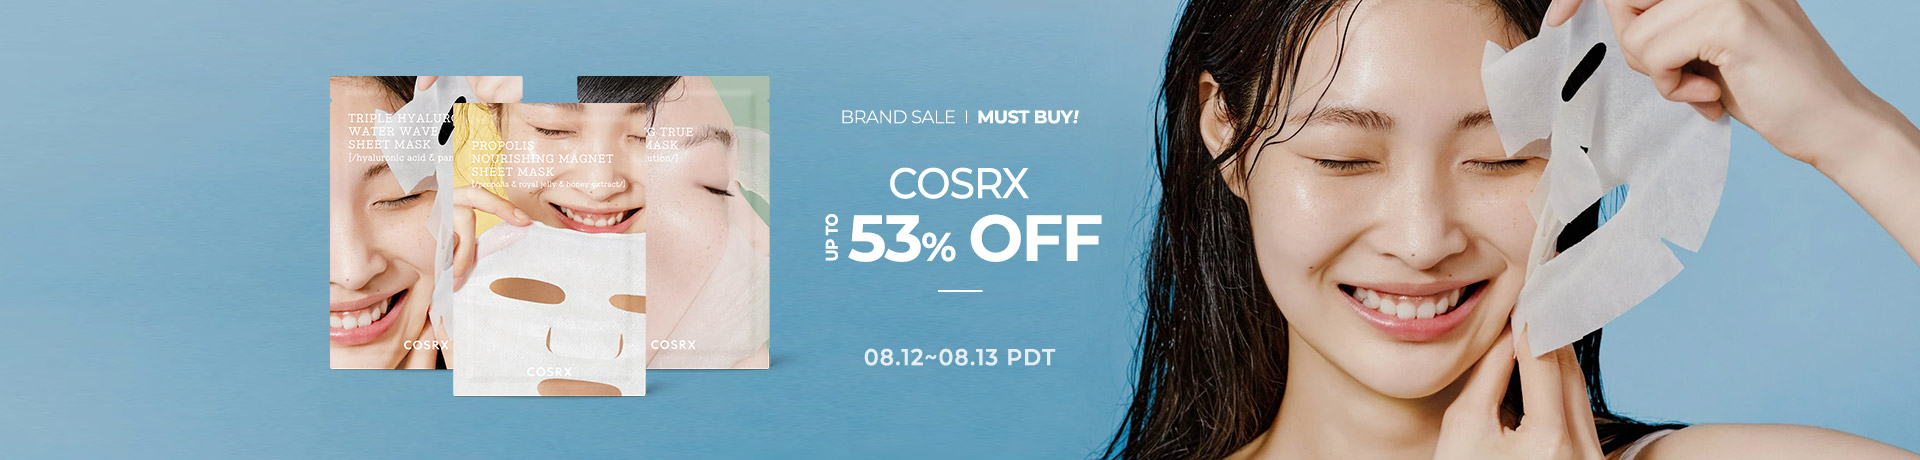 COSRX Up to 53% OFF